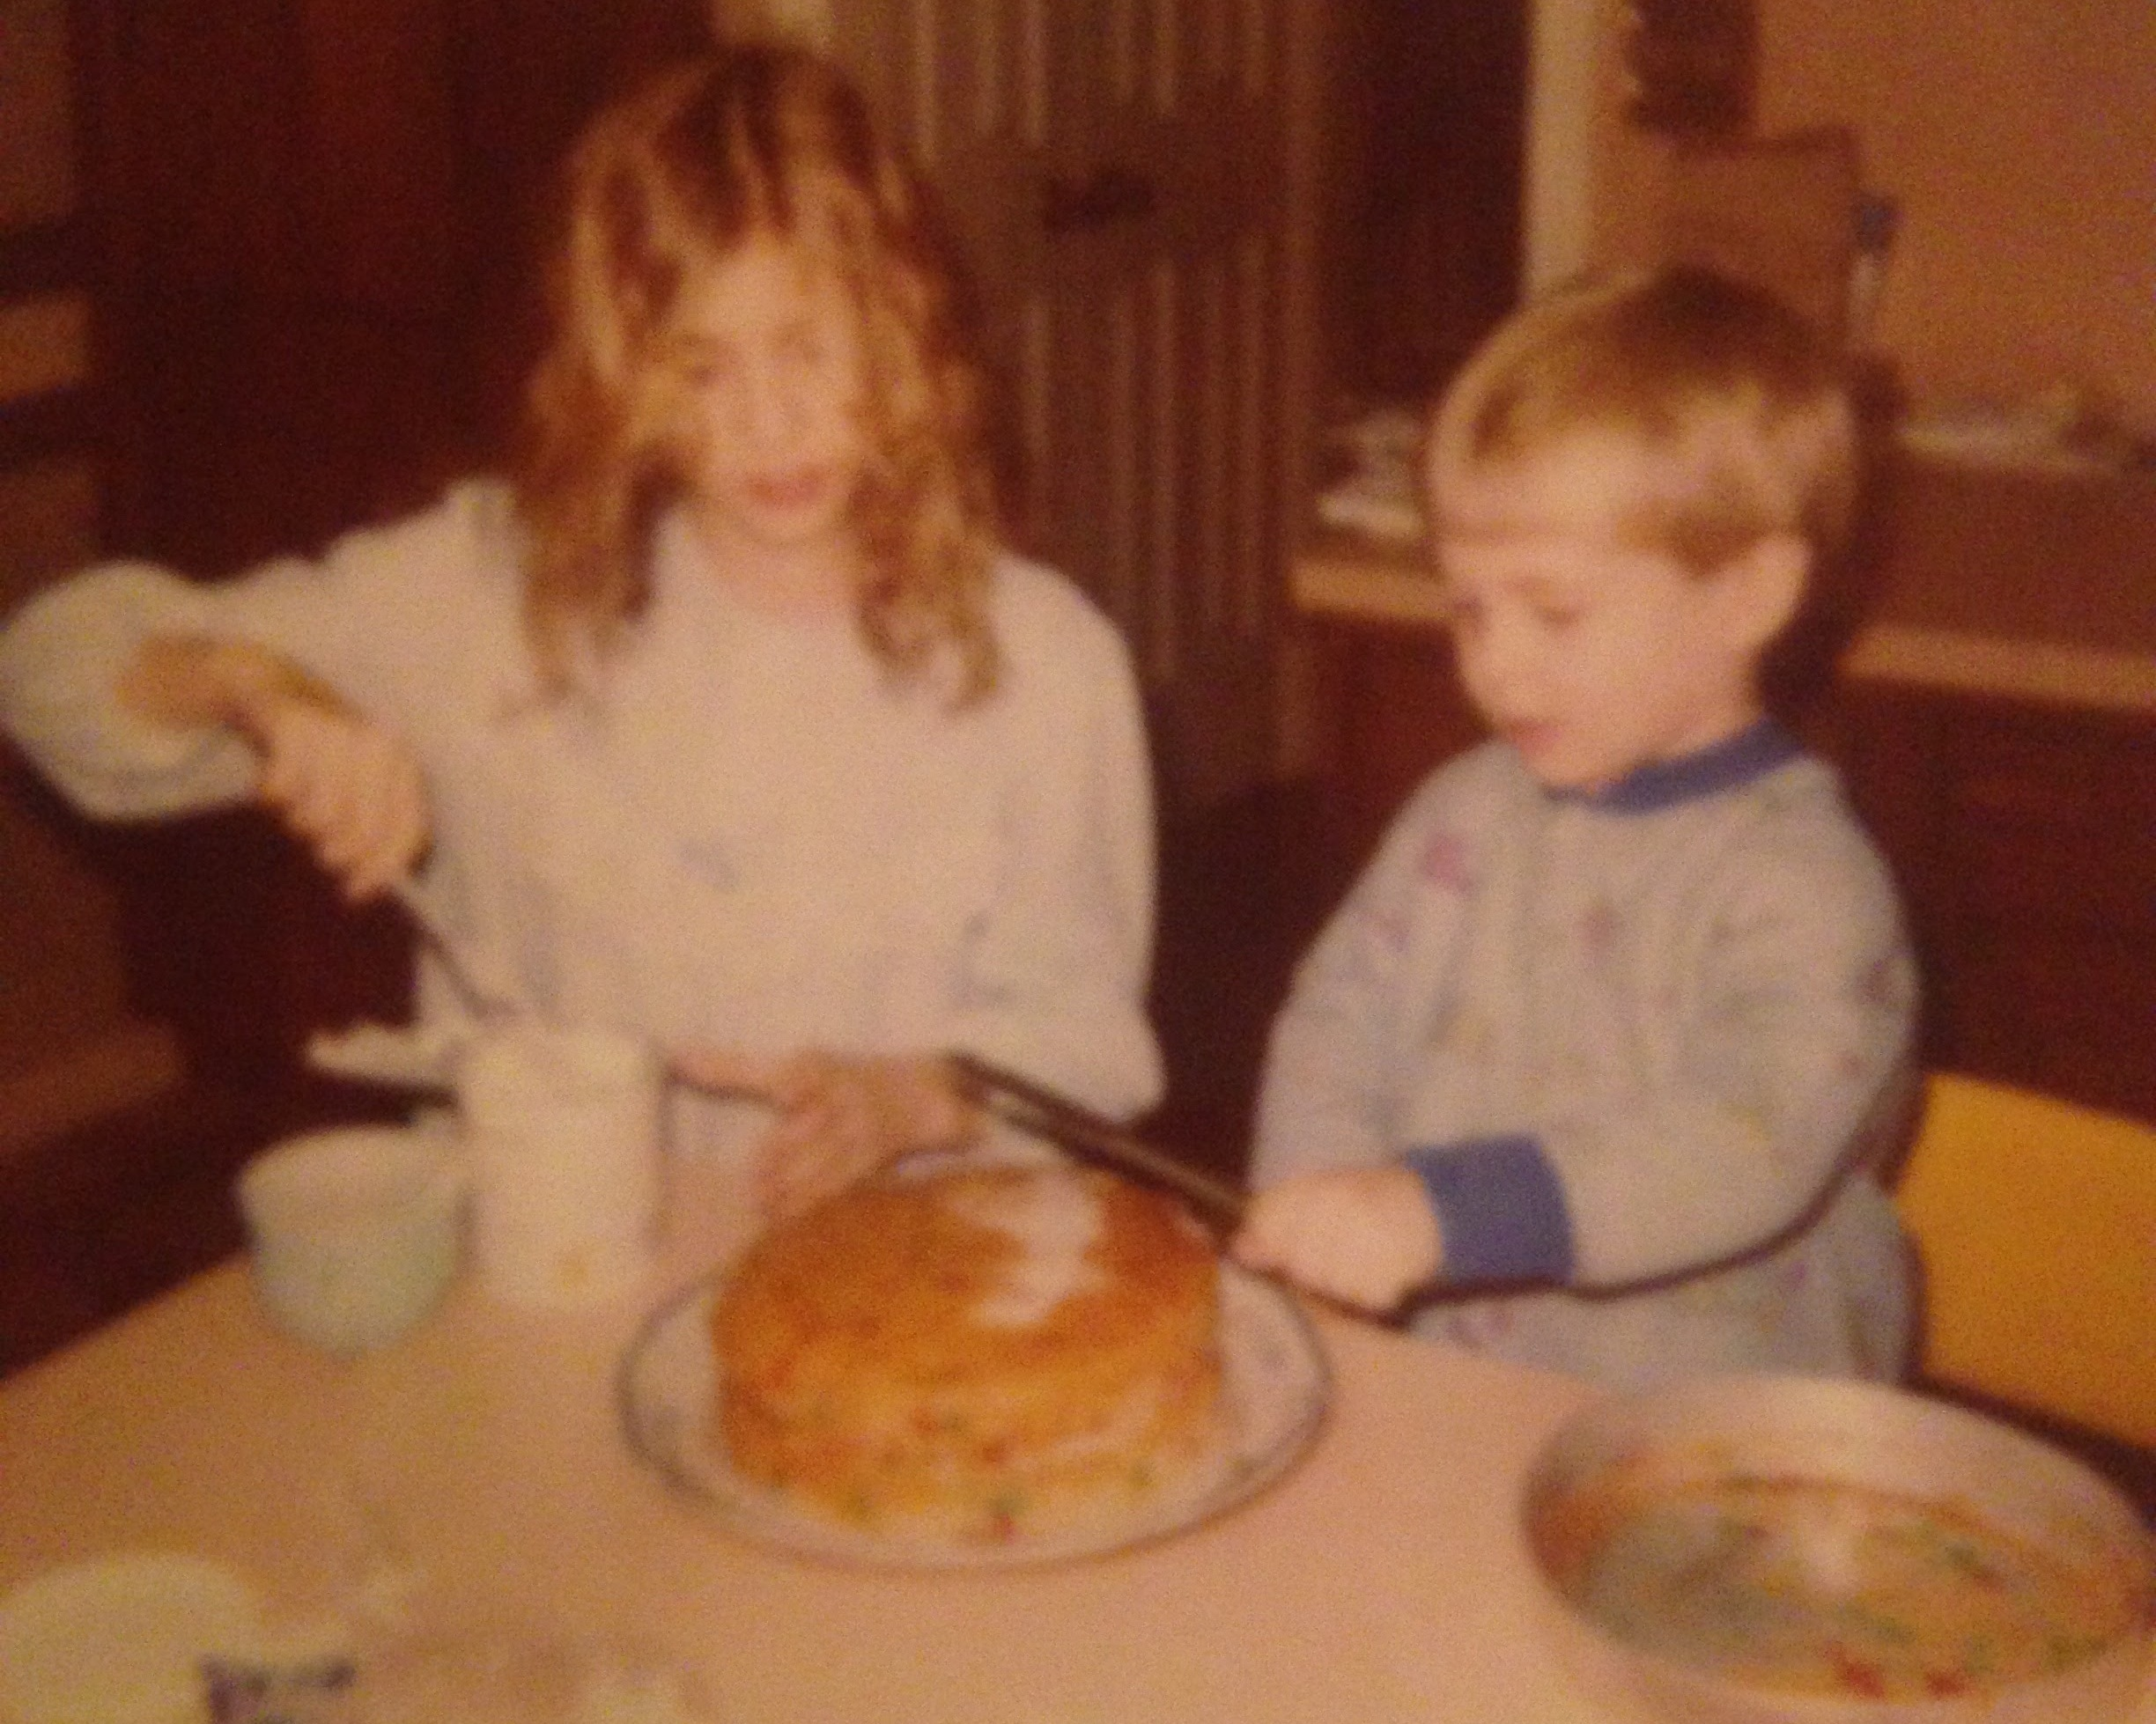 baking a cake with my little brother